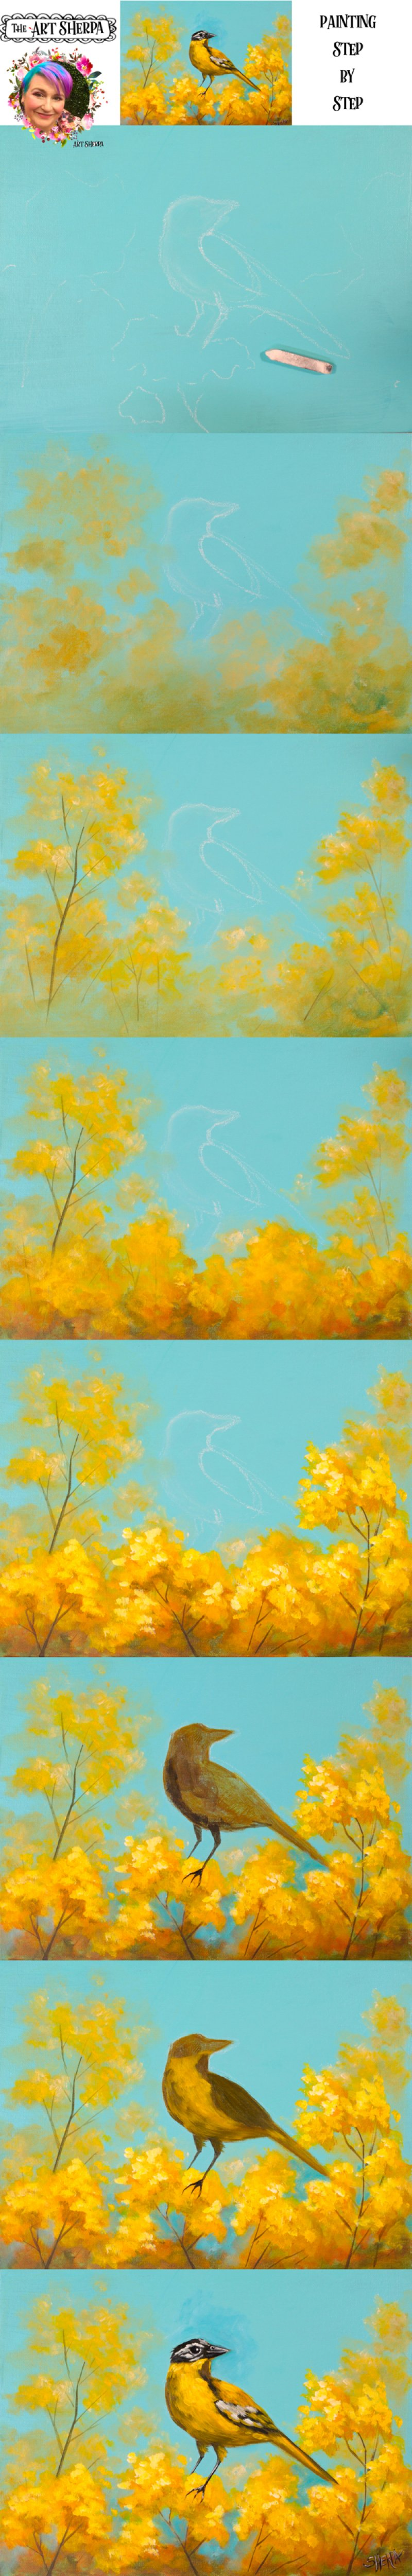 yellow bird step by step website low res.jpg